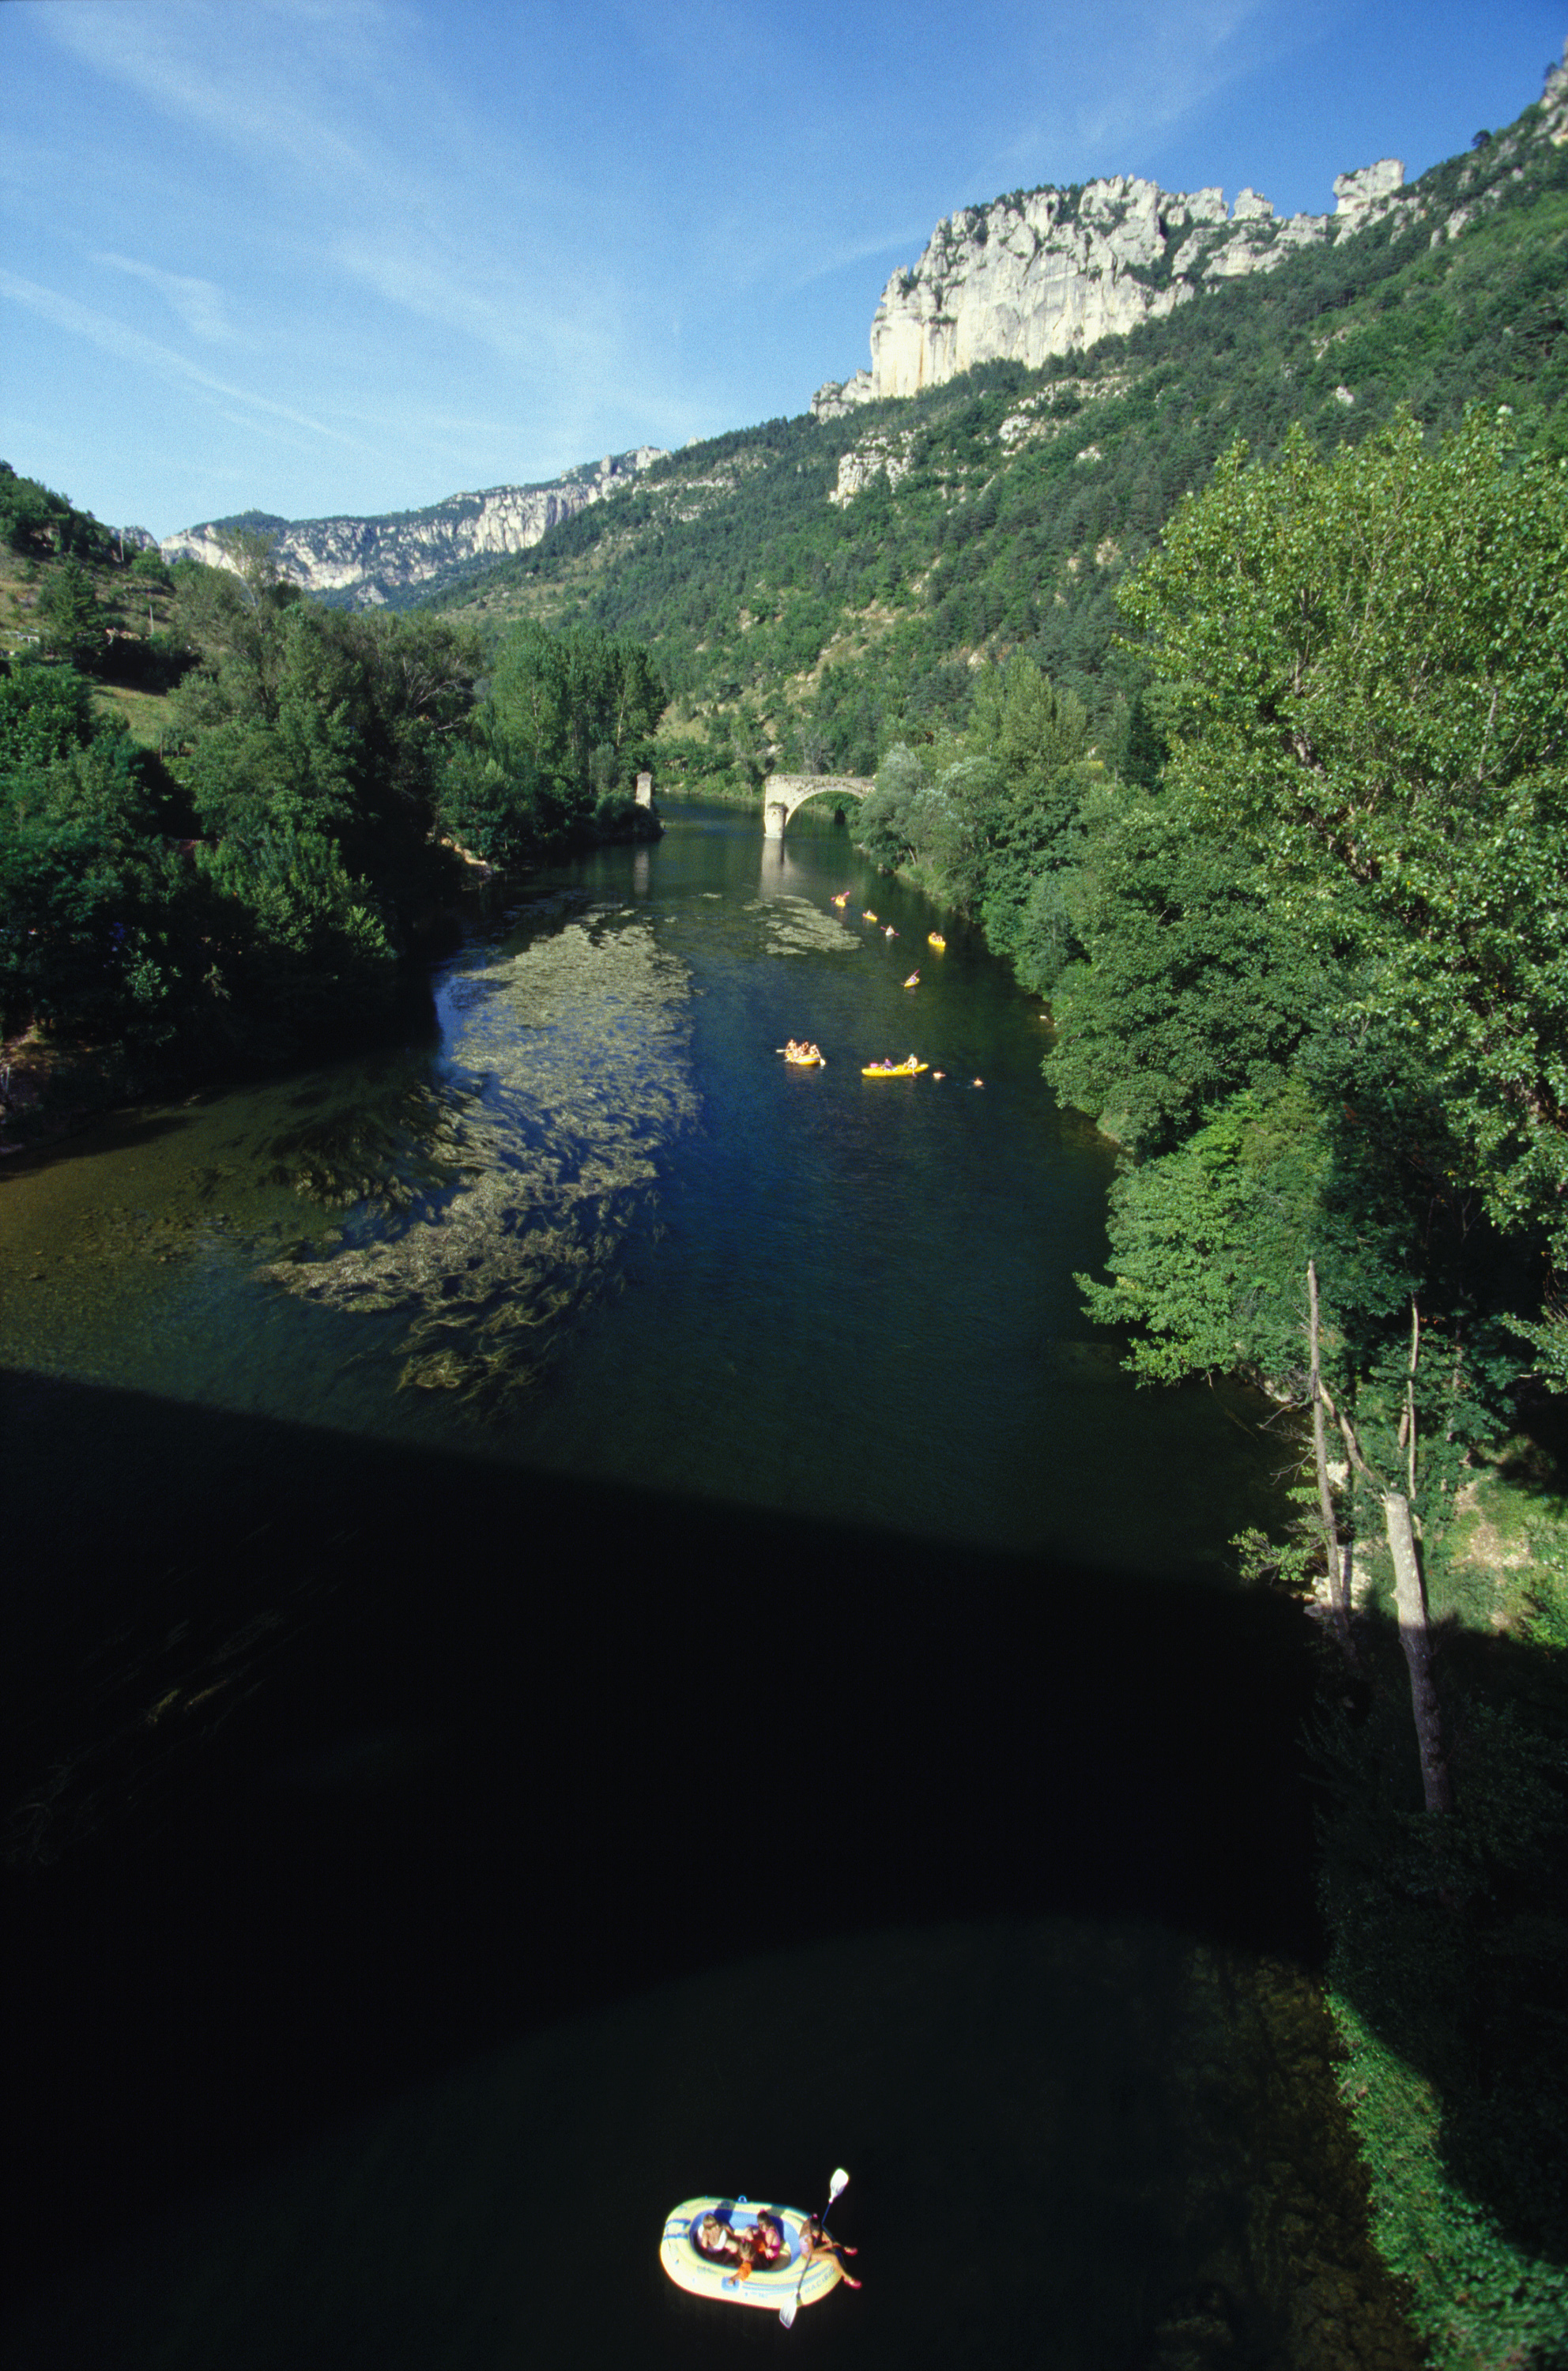 Tarn river bridge south France